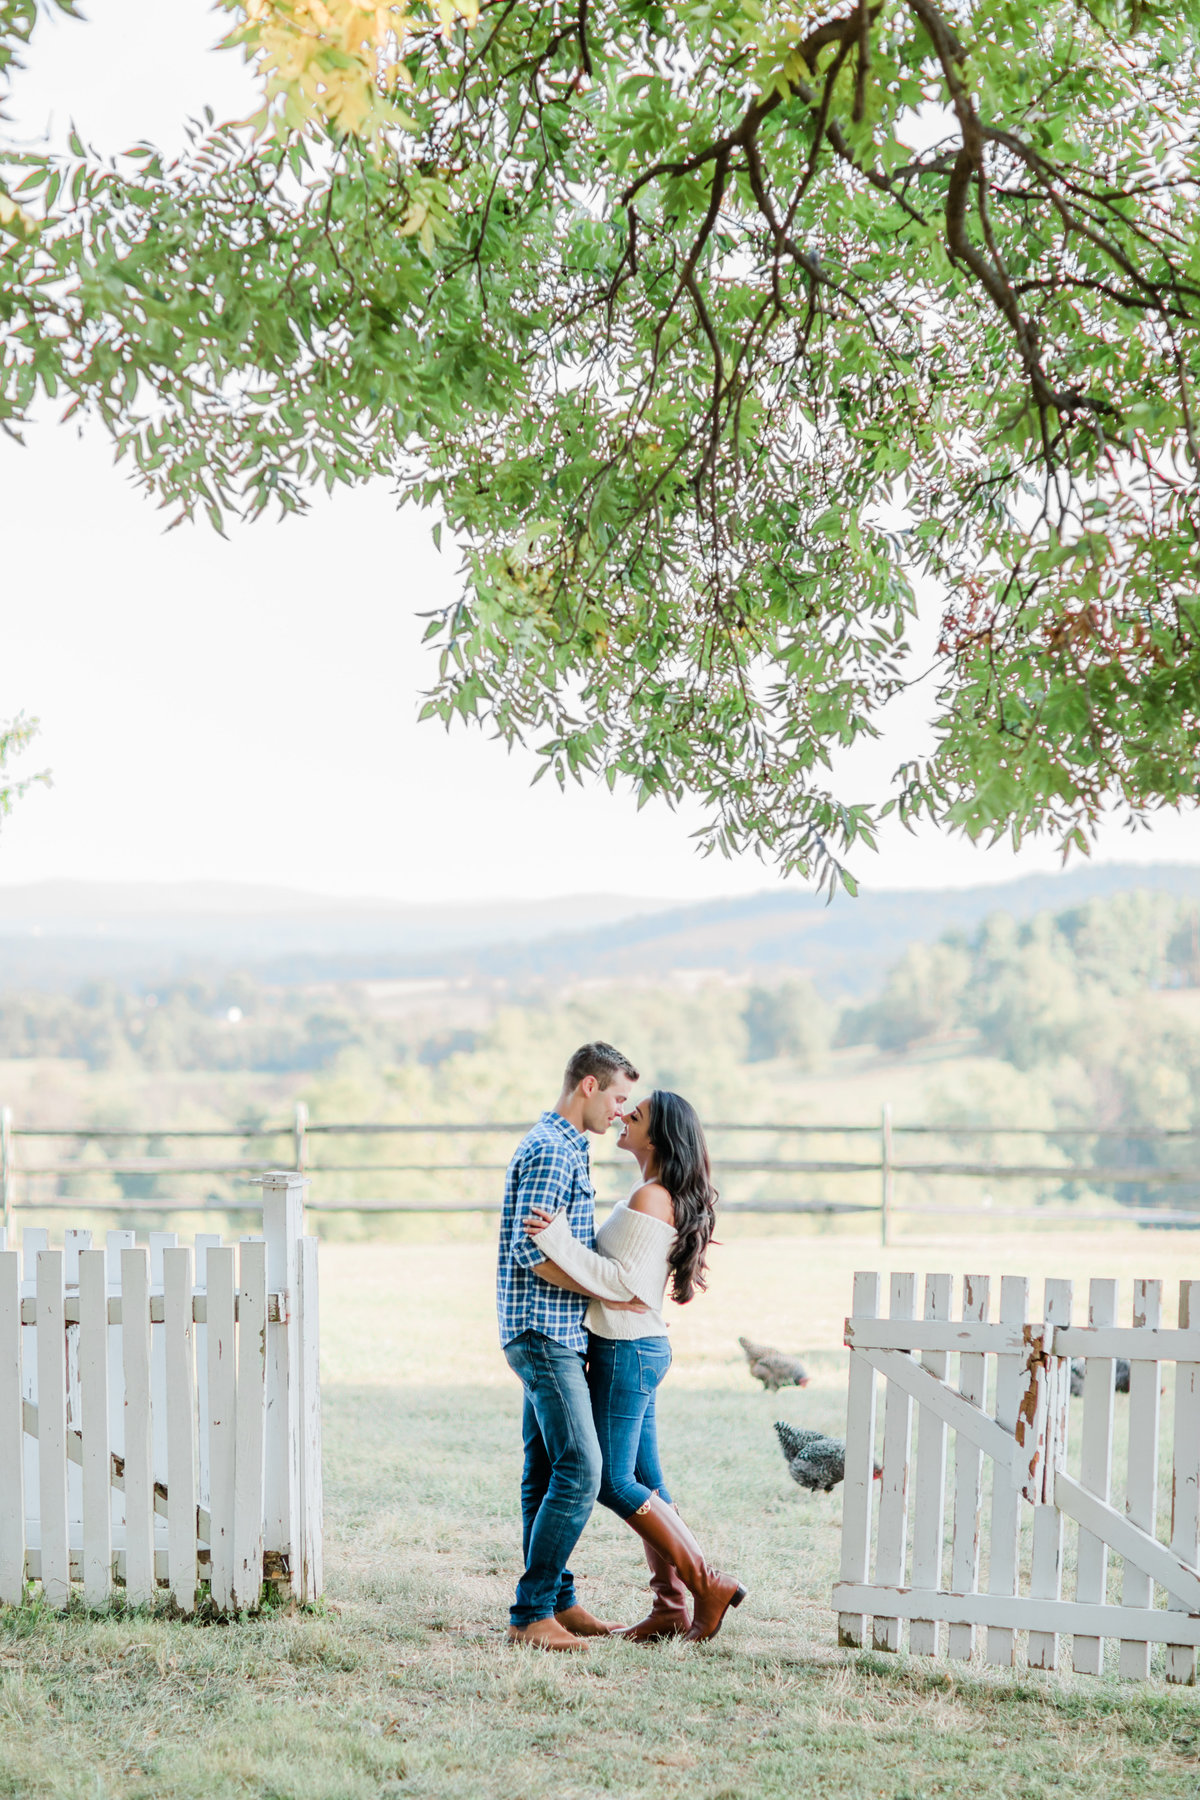 SkyMeadowsPark_Virginia_Engagement_Session_AngelikaJohnsPhotography-0070